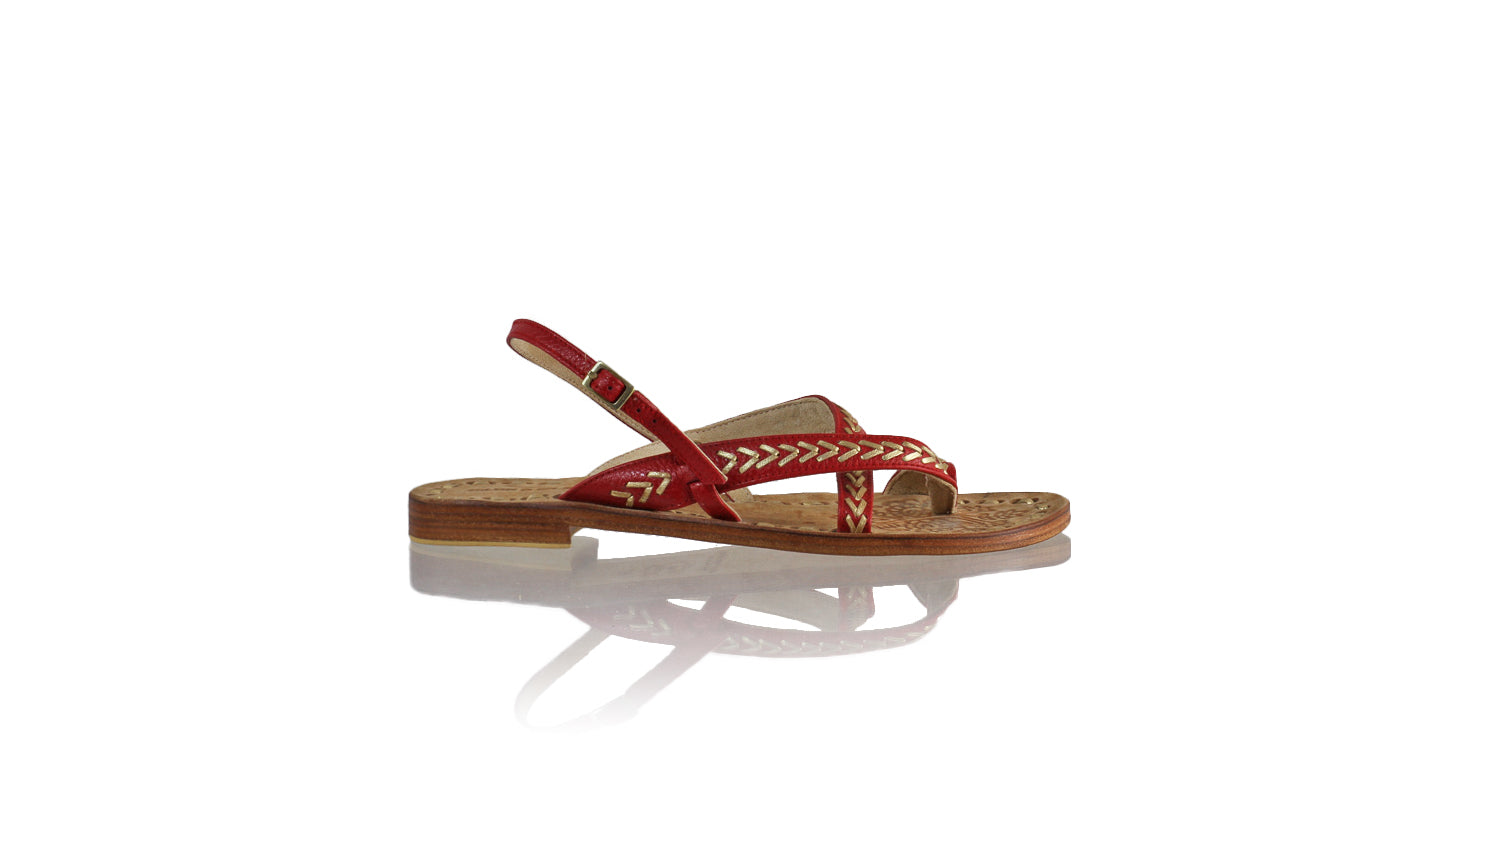 Leather-shoes-Romance 20mm Flat - Red BKK & Gold-sandals flat-NILUH DJELANTIK-NILUH DJELANTIK